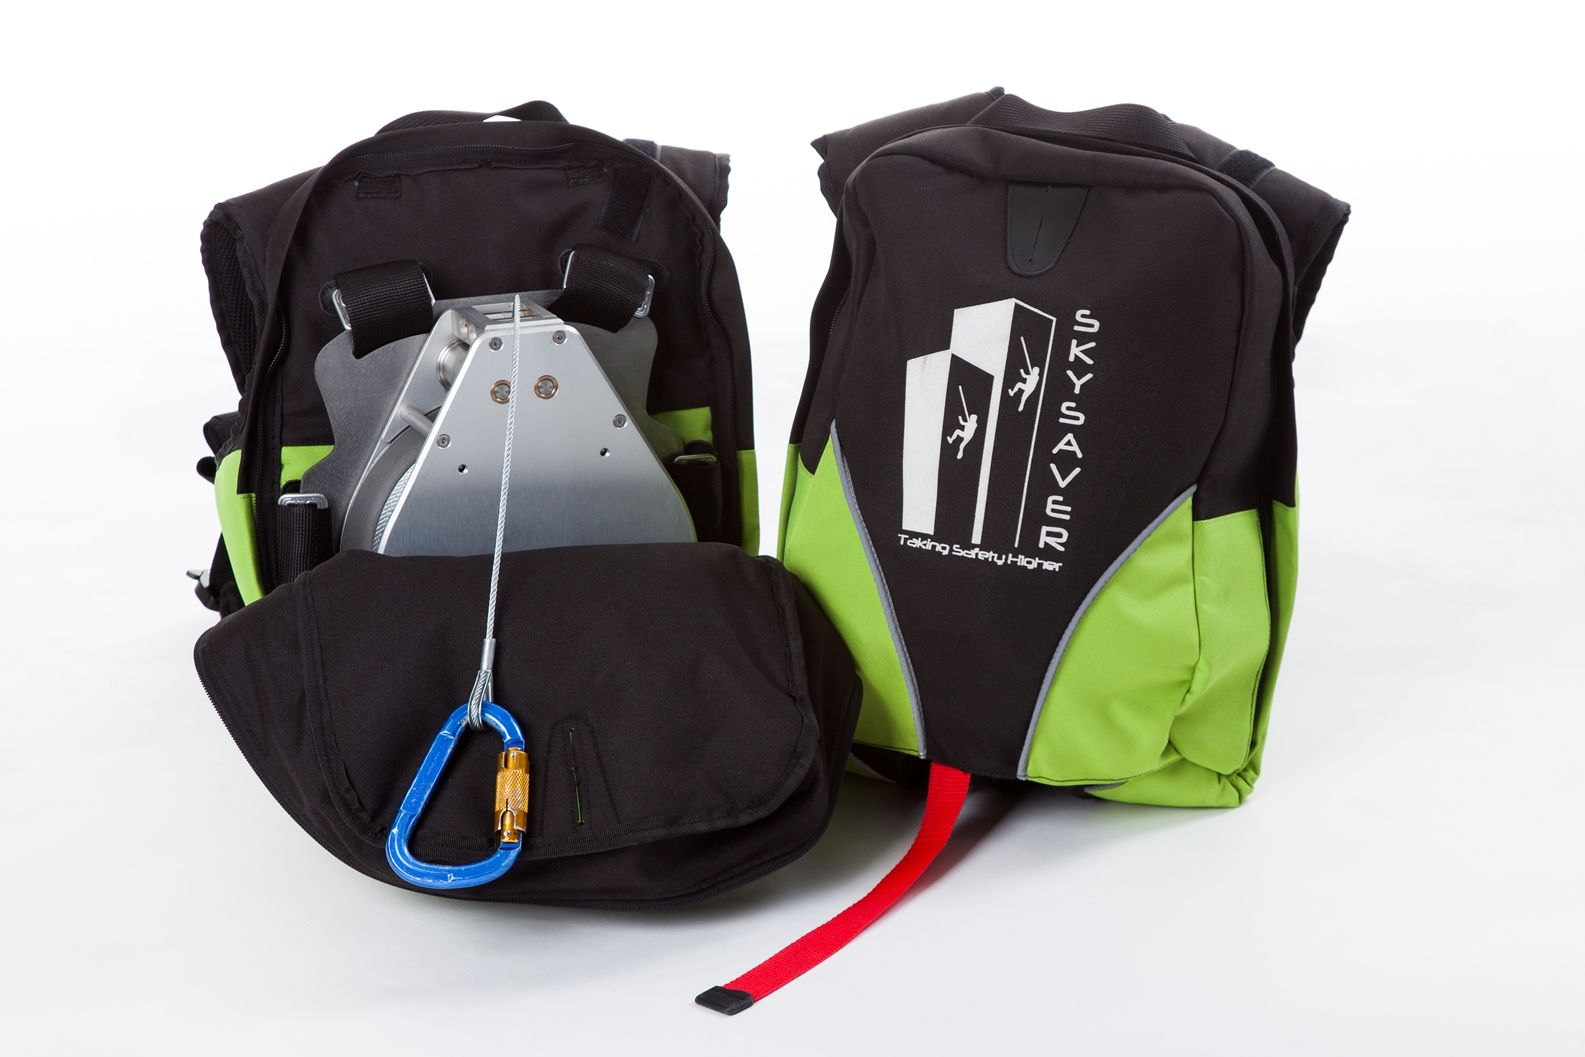 The personal rescue device is contained in a backpack. Photo: courtesy